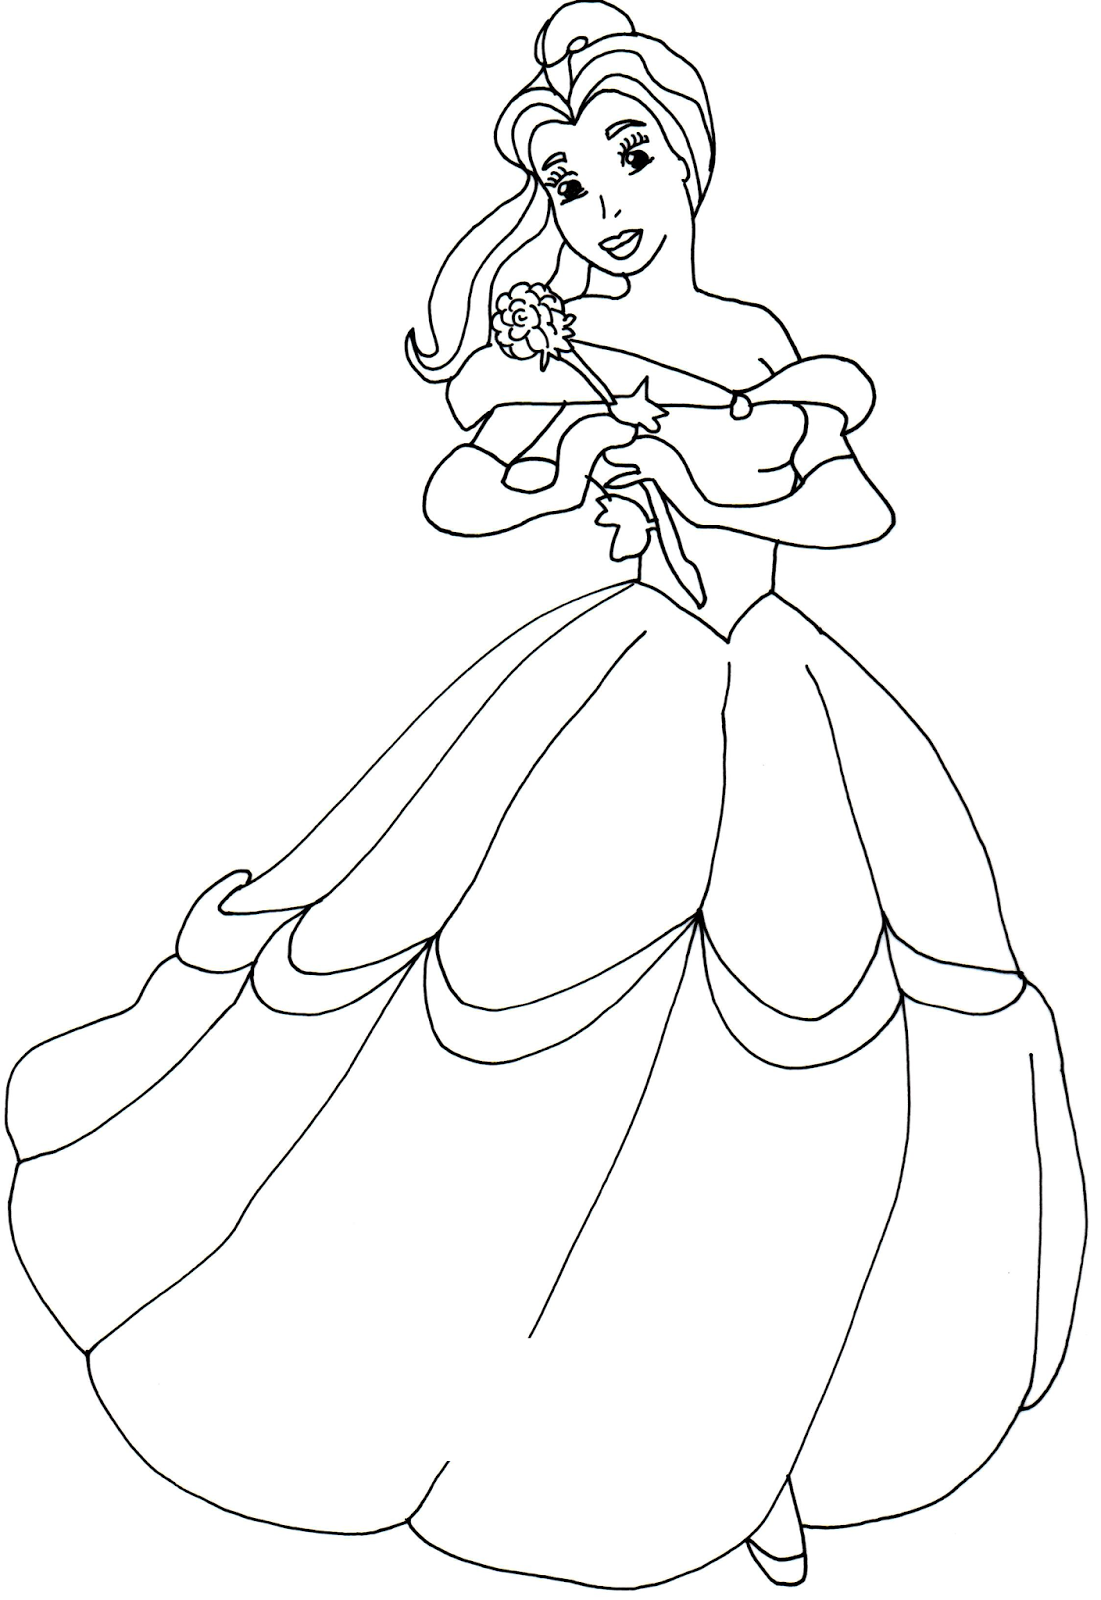 Belle Coloring Pages To Print at GetDrawings | Free download